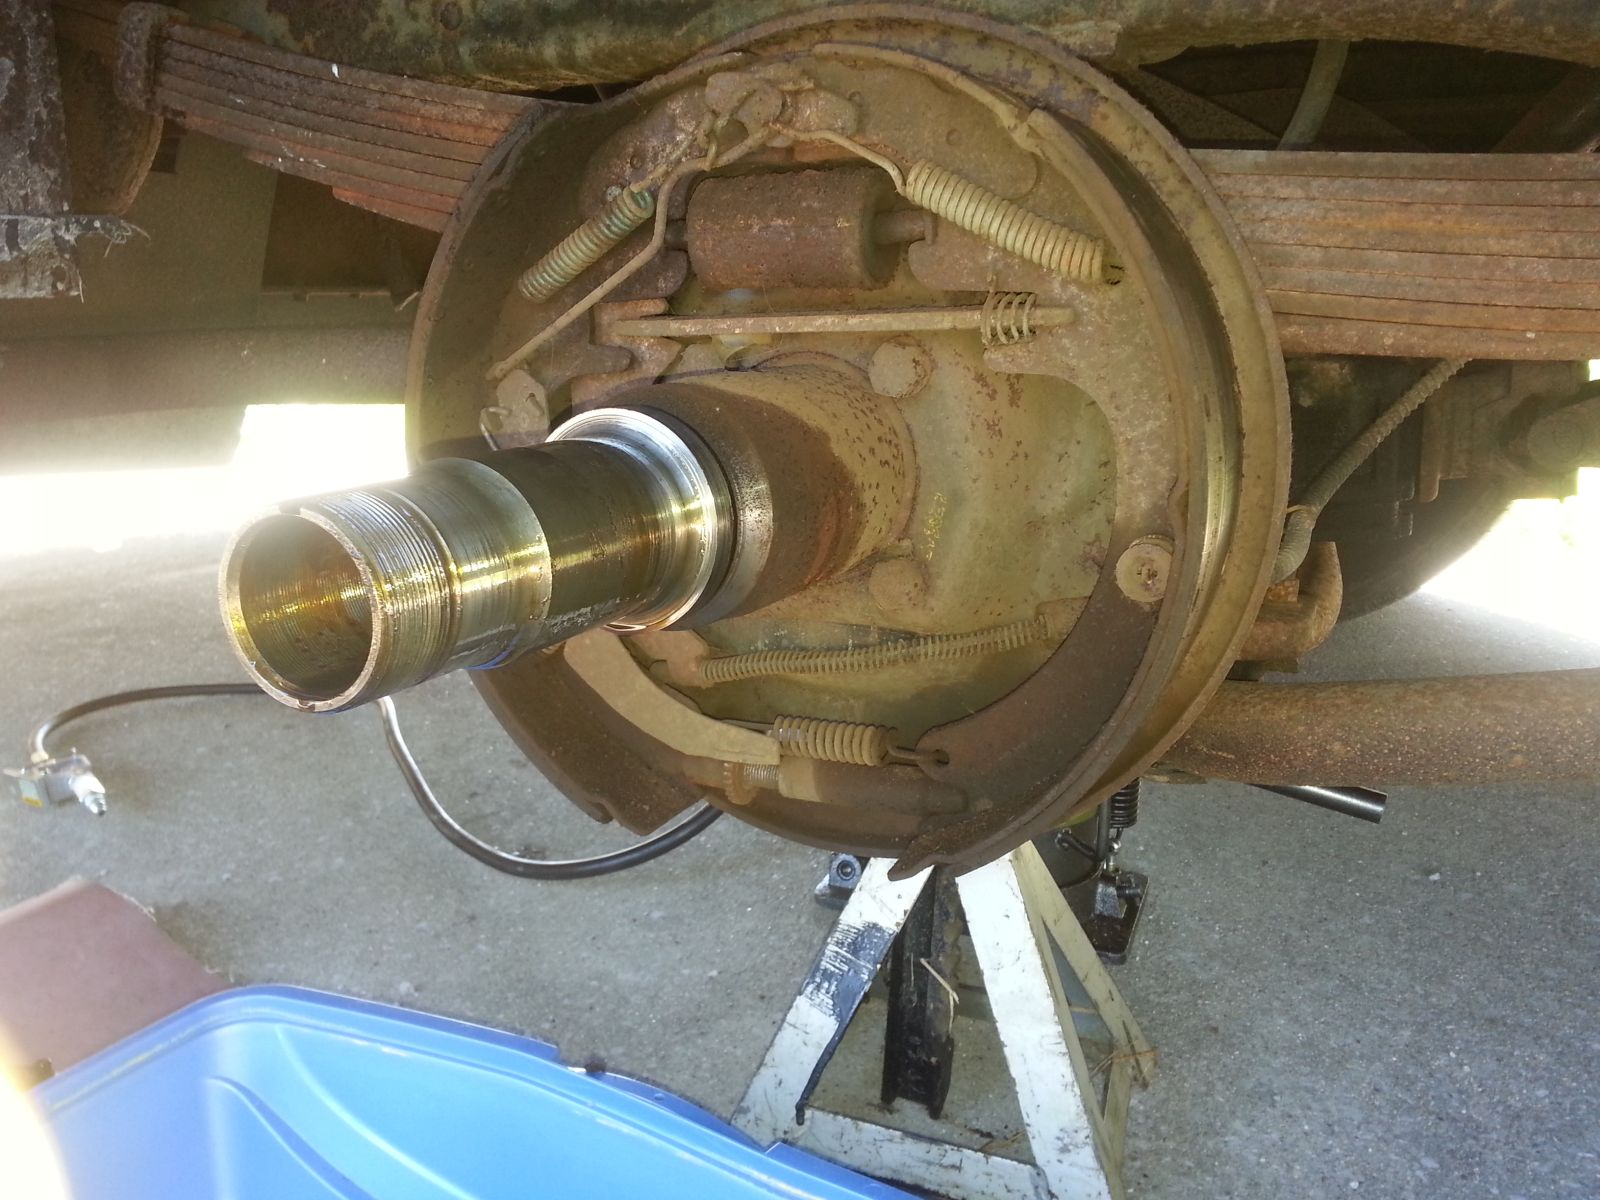 Click image for larger version  Name:peanut-oil-on-brake-shoes.jpg Views:67 Size:265.8 KB ID:259913